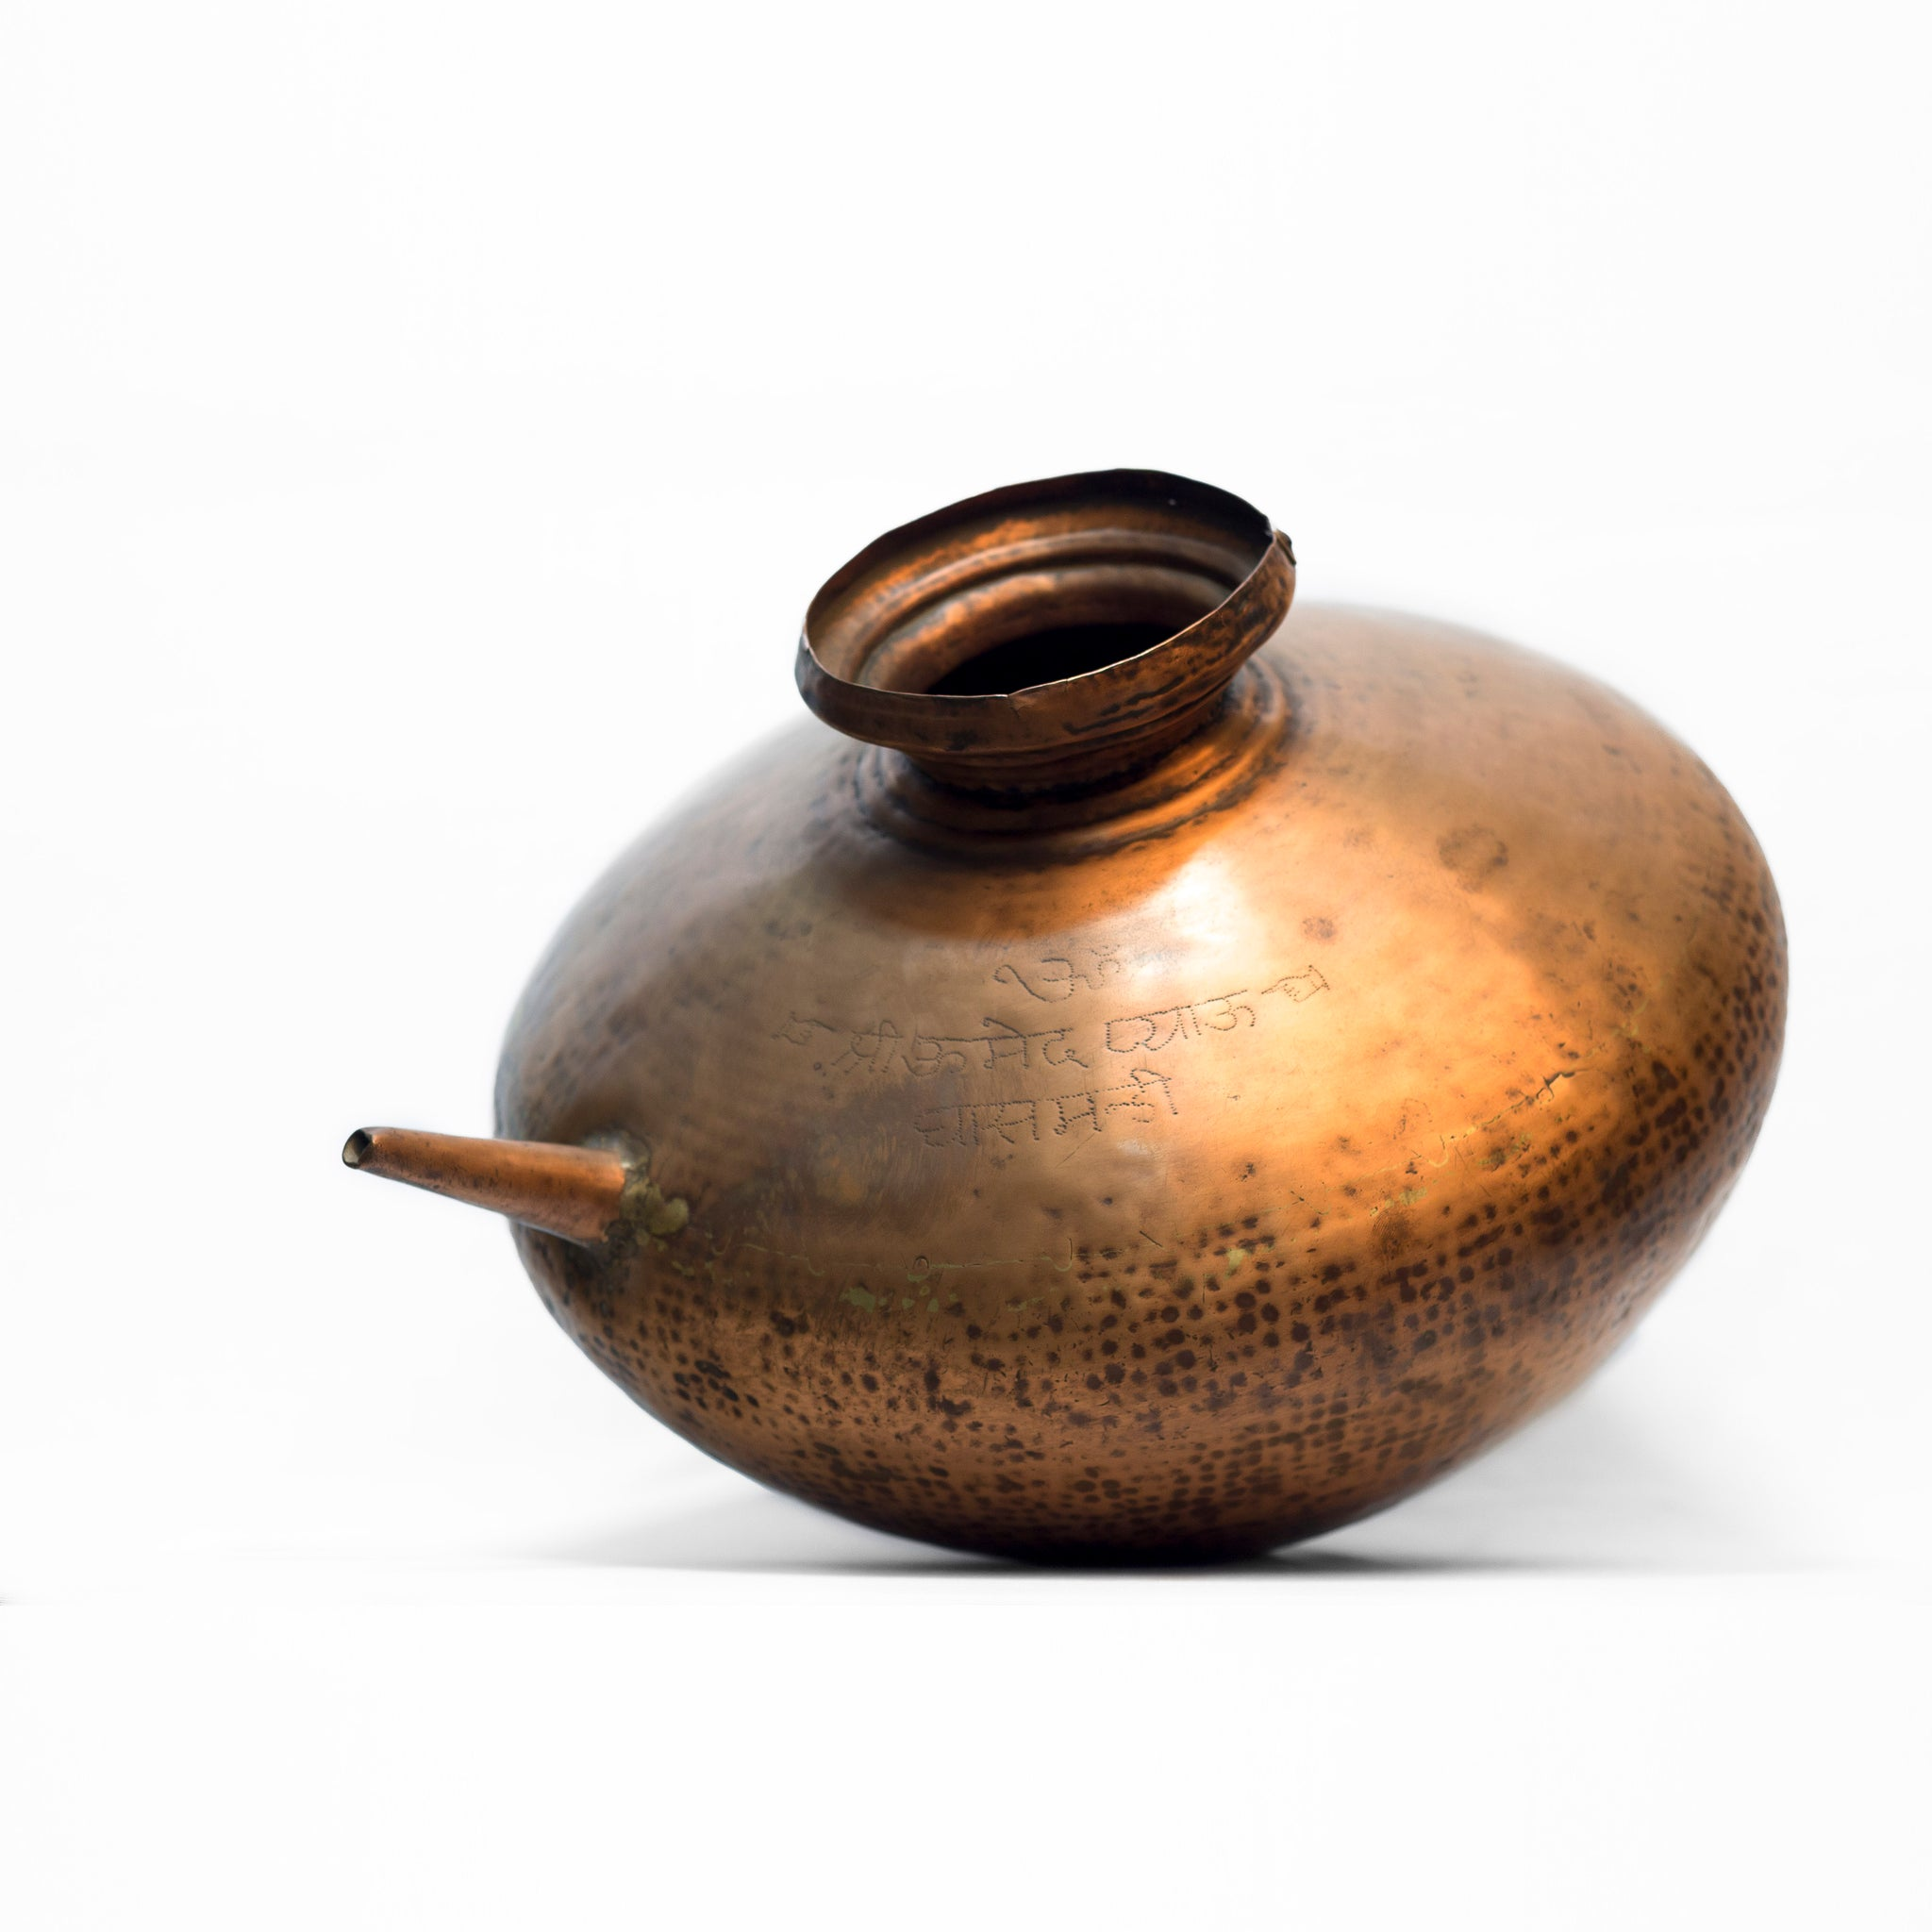 UNIQUE SHAPED METAL WATER POT WITH A SPOUT